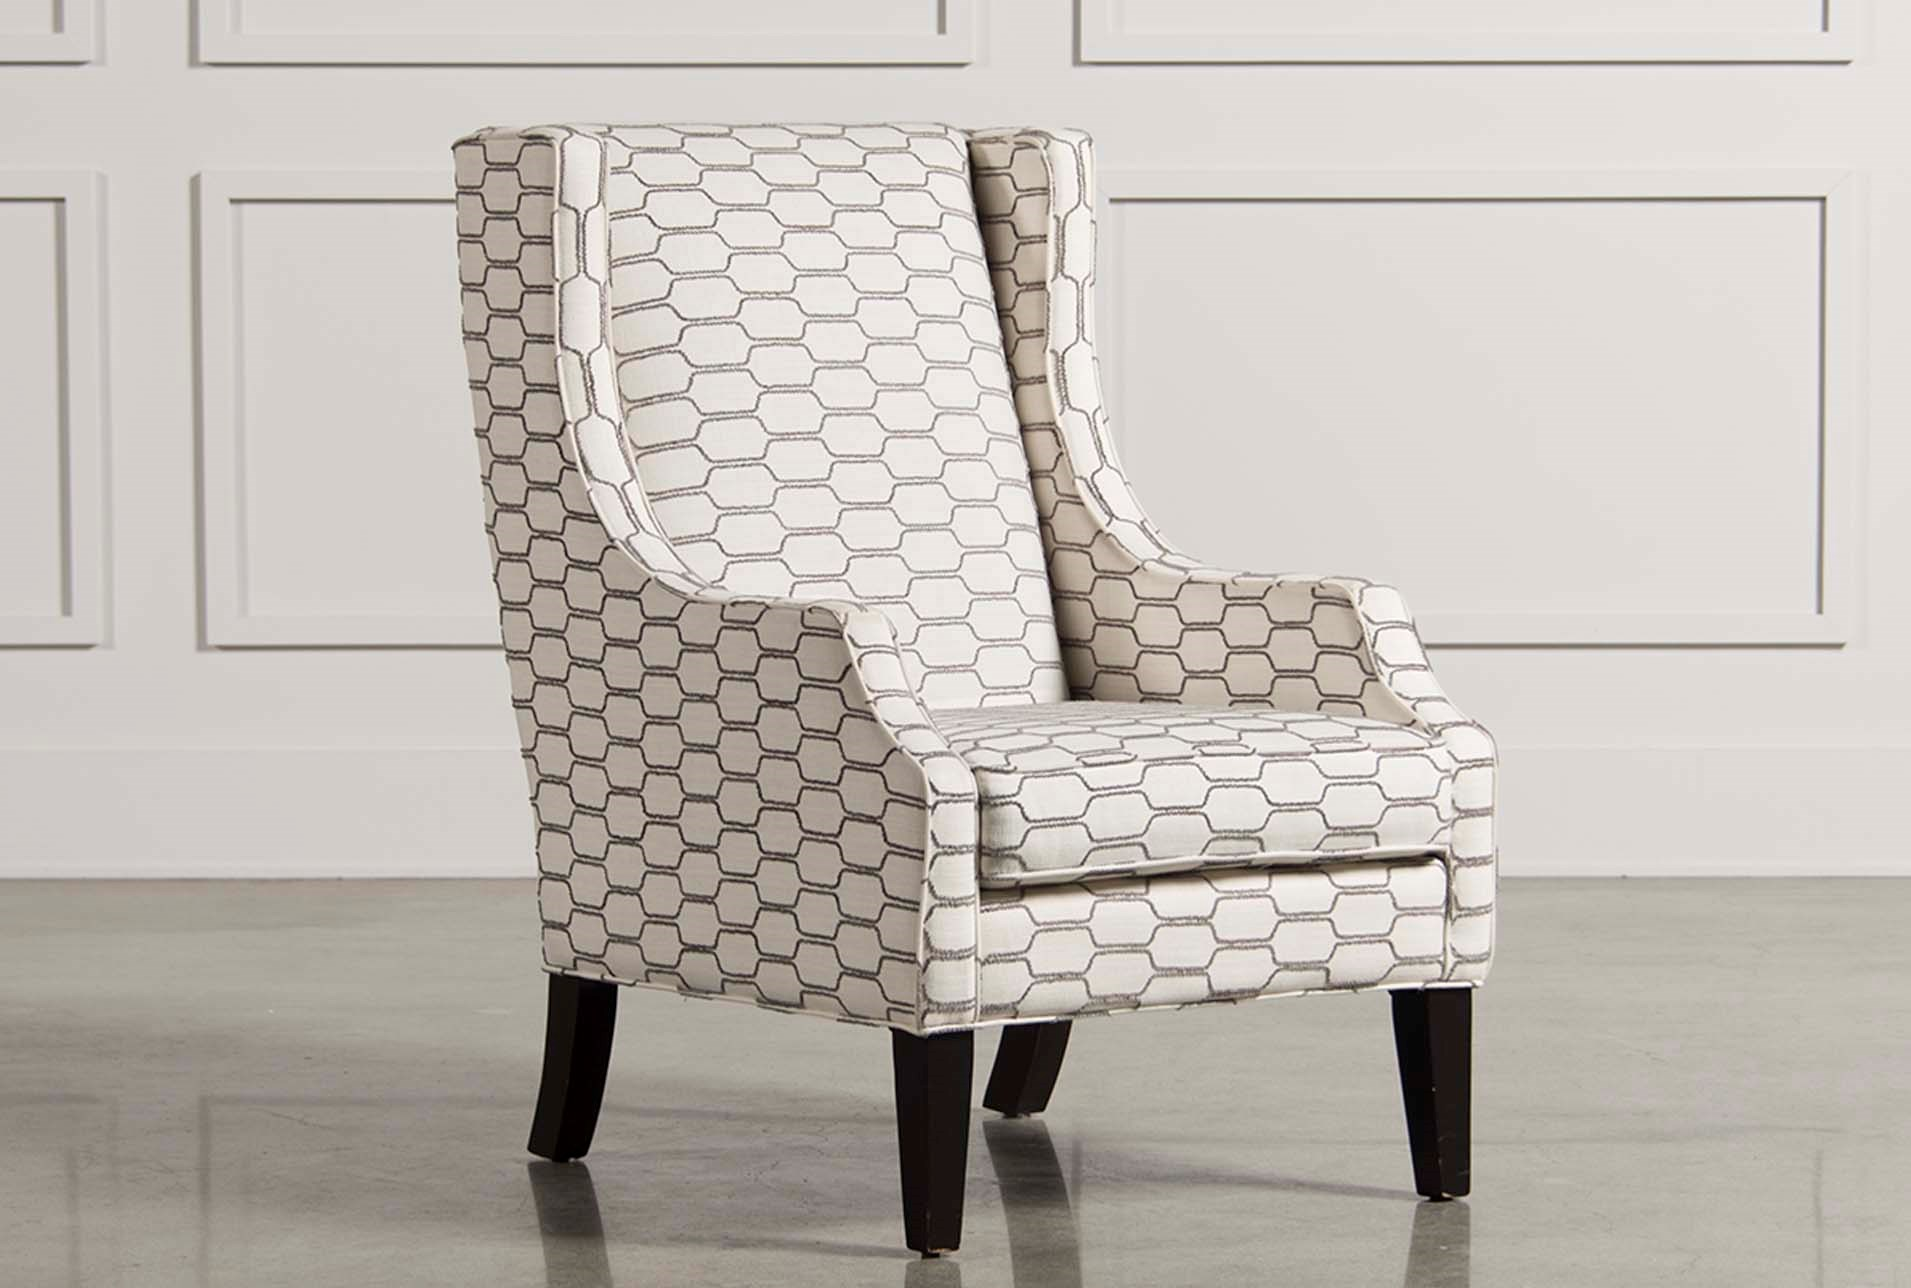 Lewis Zinc Wing Chair Qty 1 Has Been Successfully Added To Your Cart